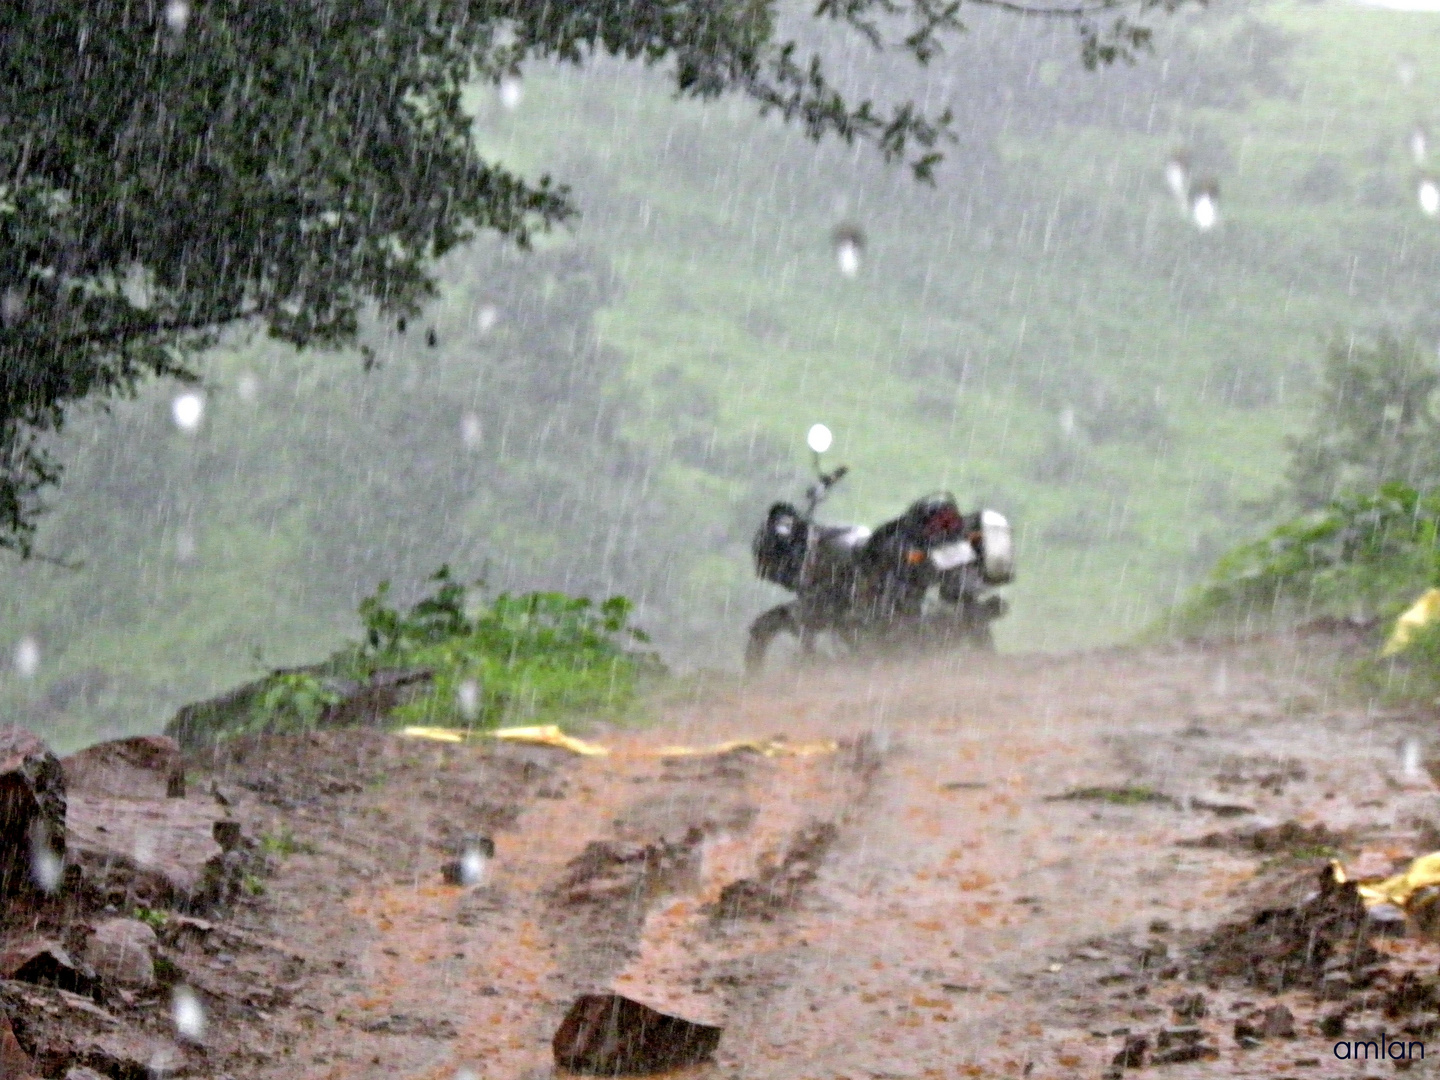 THE TORRENTIAL RAINS OF THE SAHYADRI MOUNTAINS